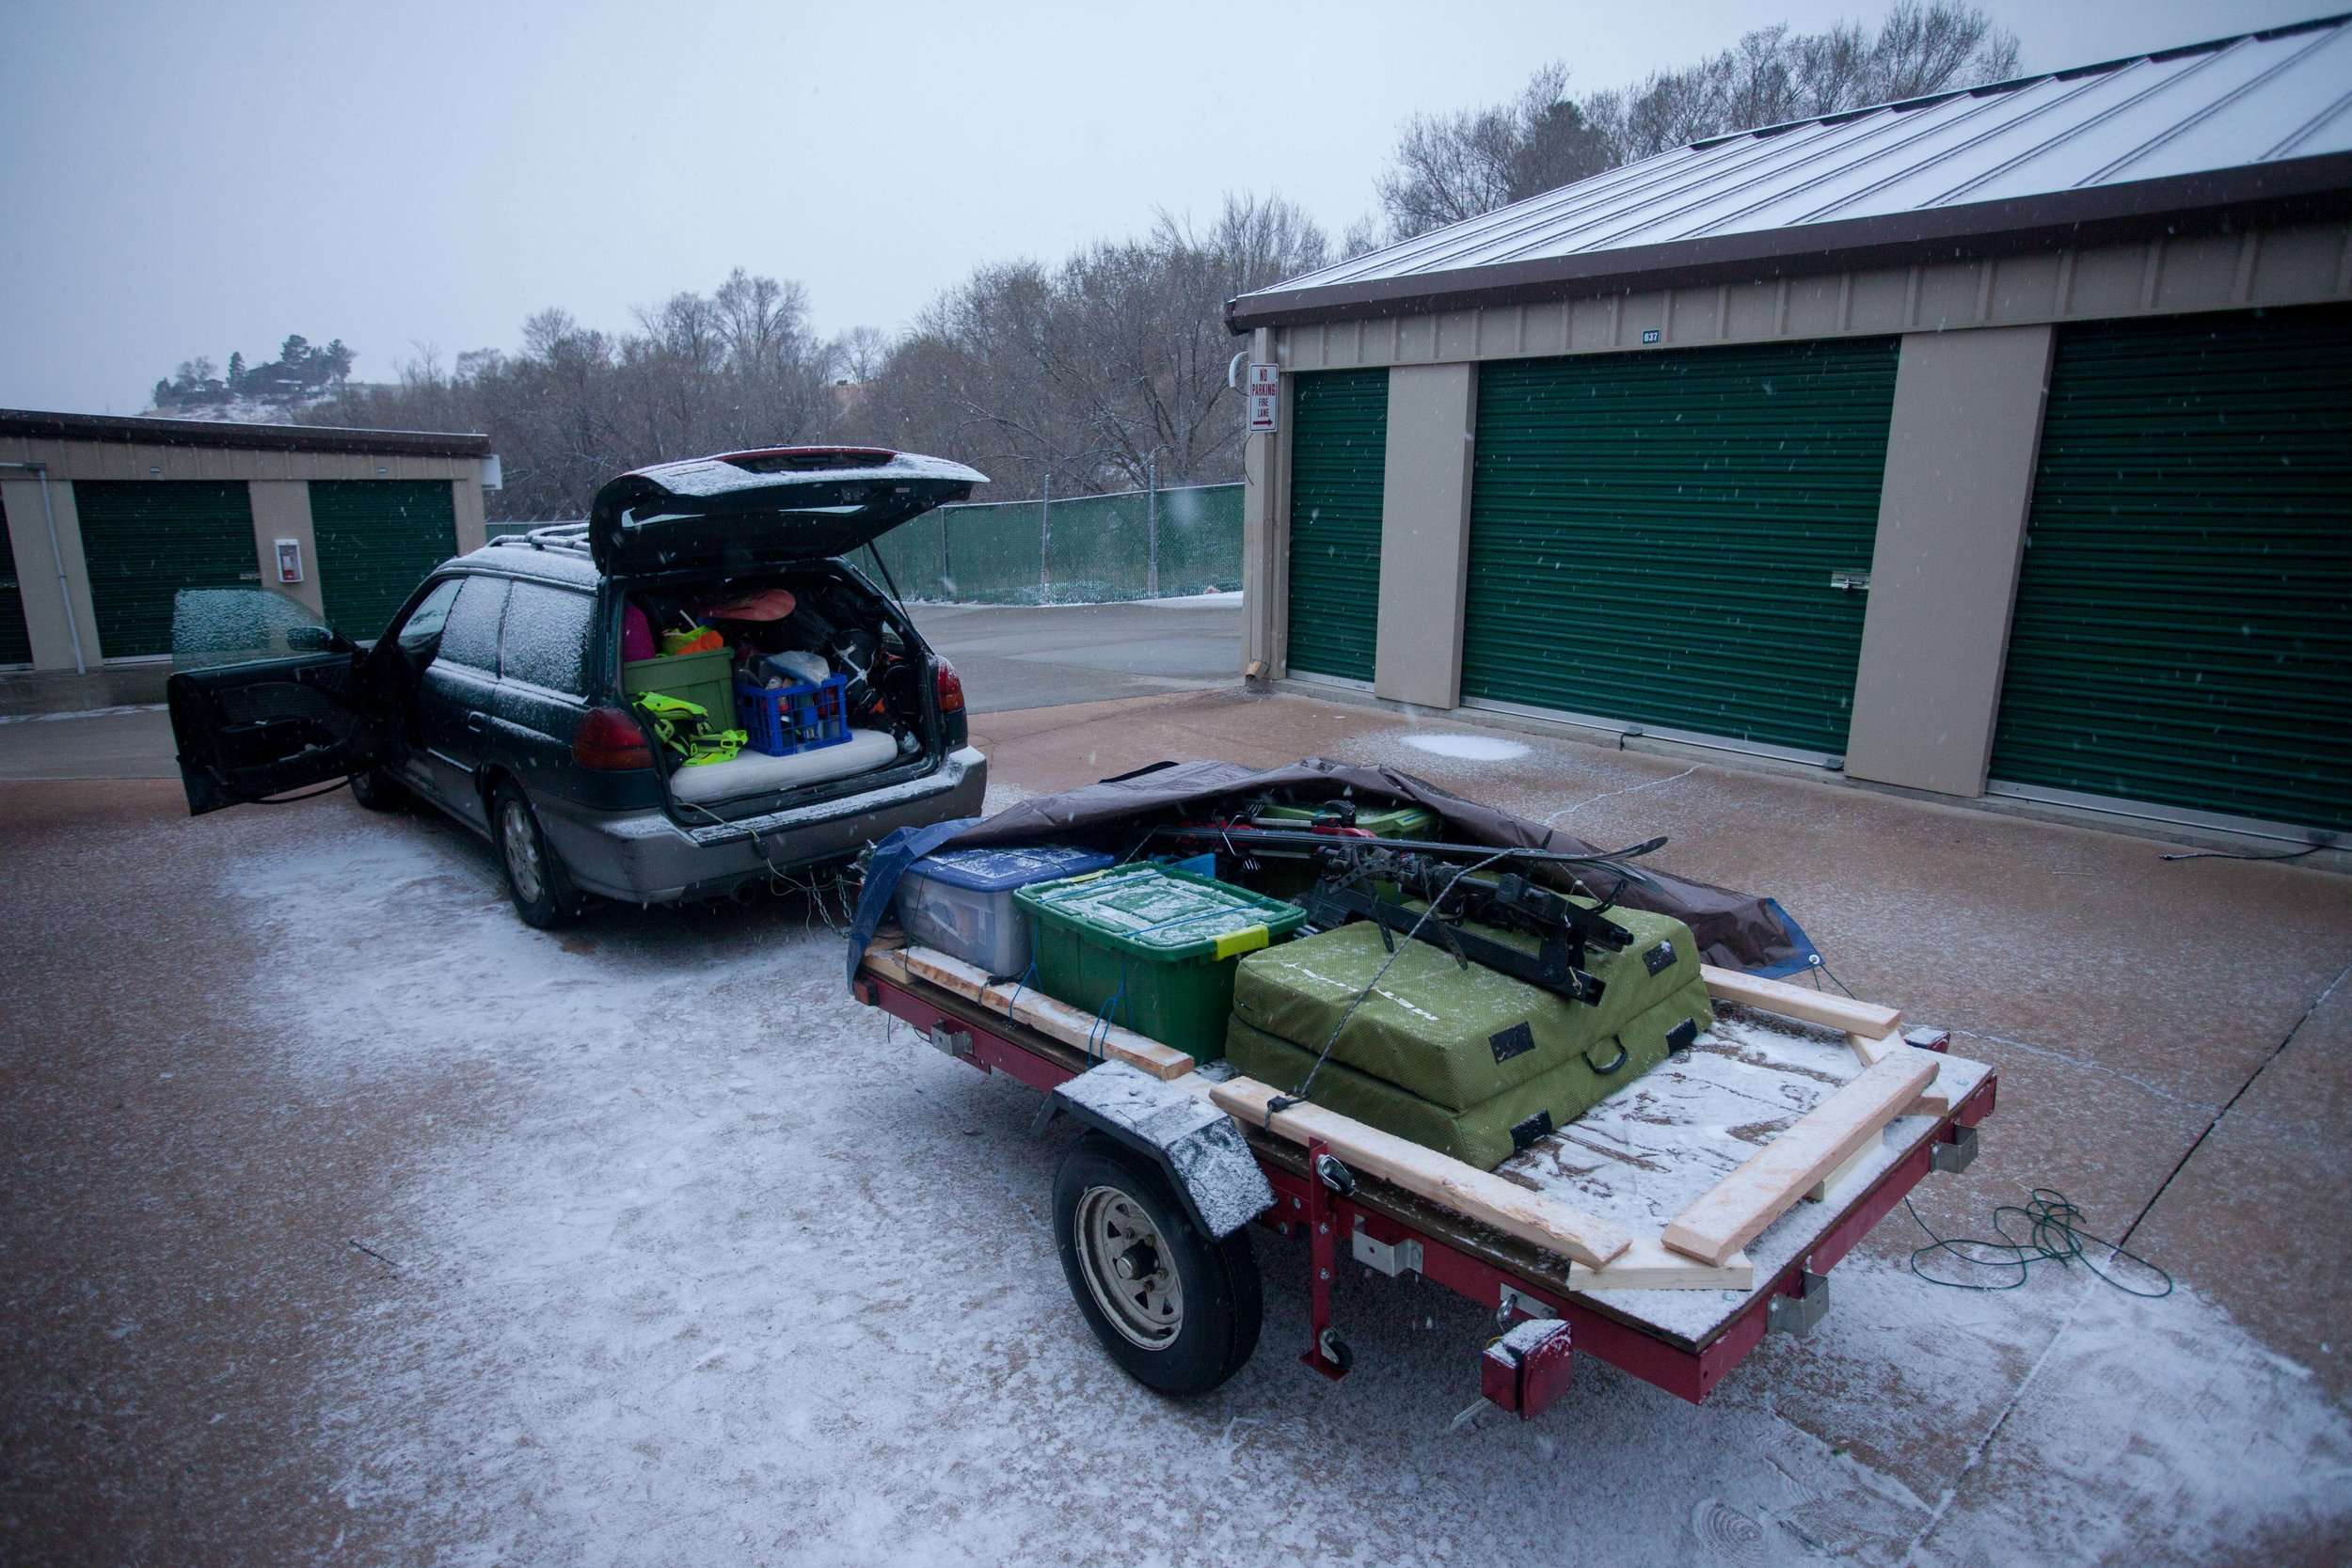 Of course, Colorado had to snow while I was cleaning my storage unit.